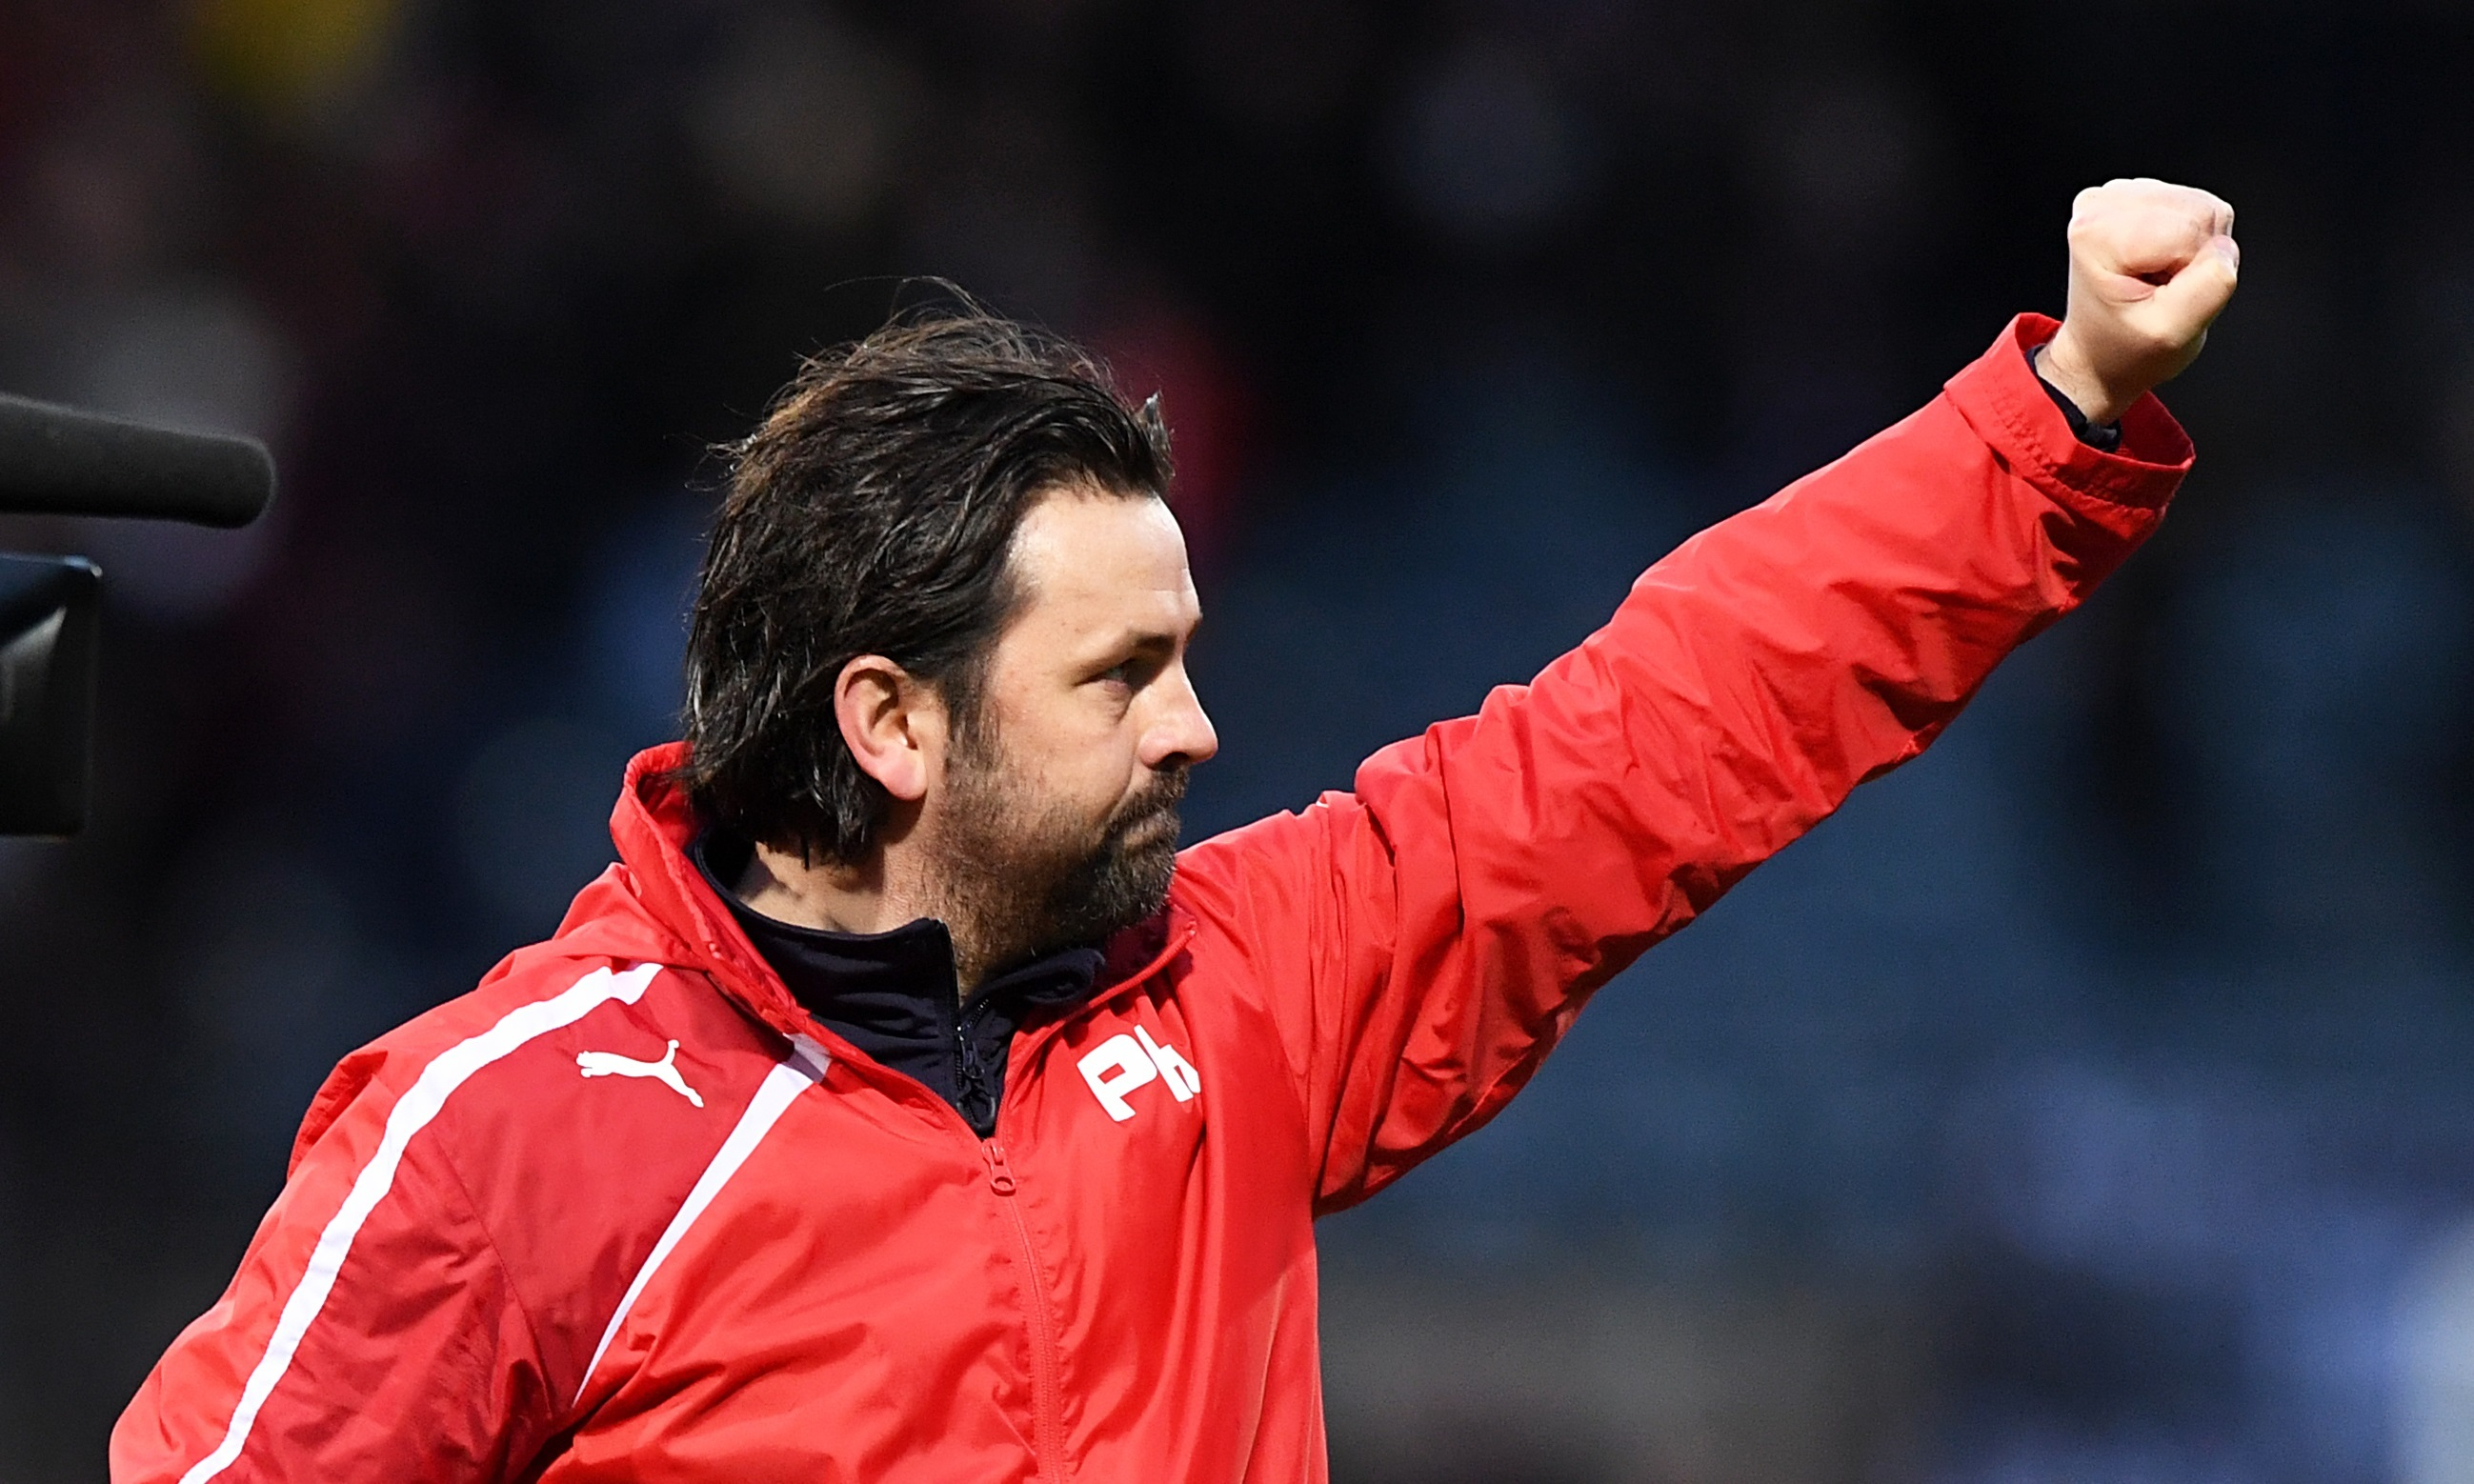 Dundee manager Paul Hartley hopes to build on his side's performance against Rangers.